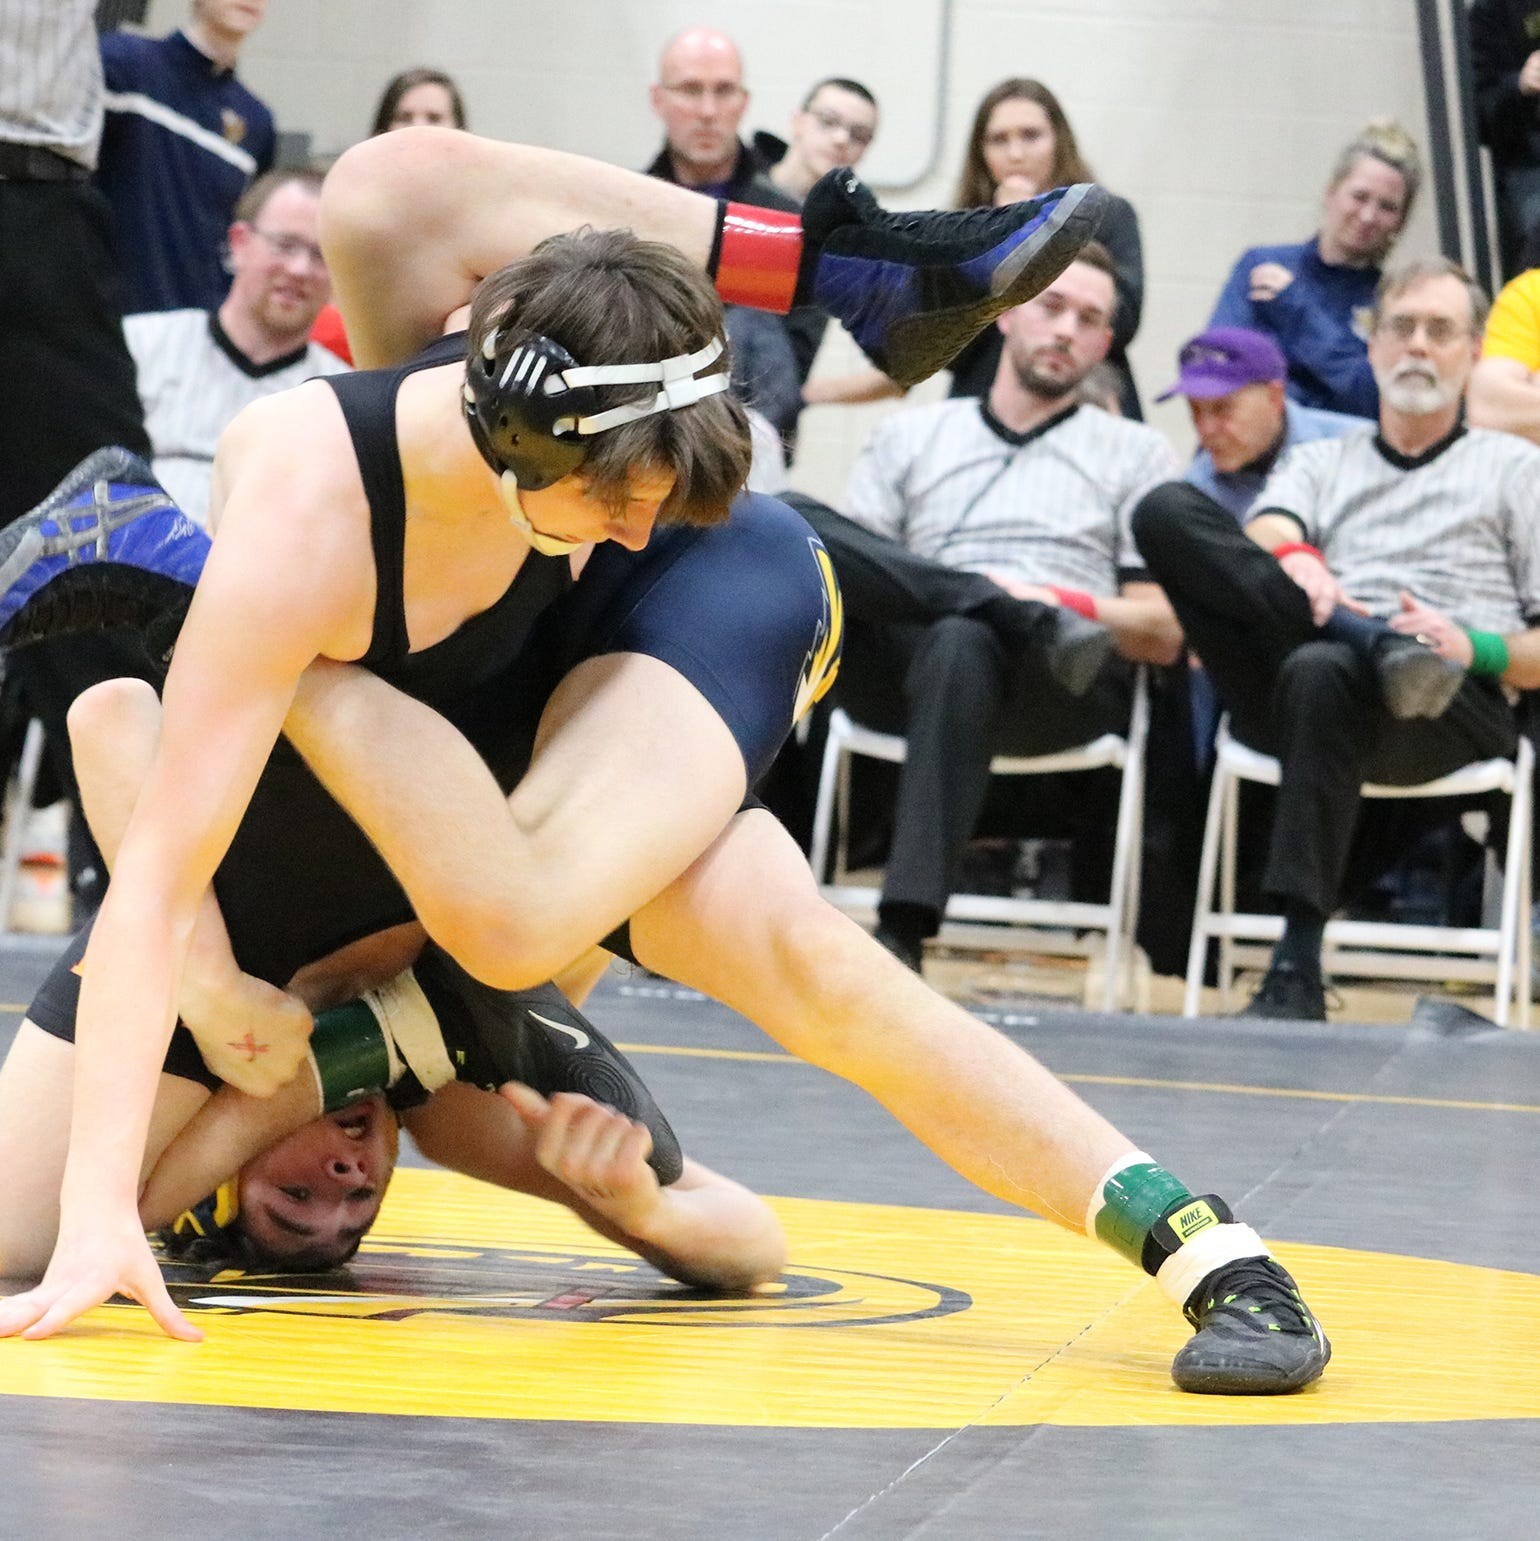 Bainbridge-Guilford/Afton/Harpursville's Brody Oleksak, top, and Tioga's' John Worthing wrestle in the 138-pound final of Saturday's Section 4 Division II Tournament at Windsor. Oleksak won, 3-0 in overtime.